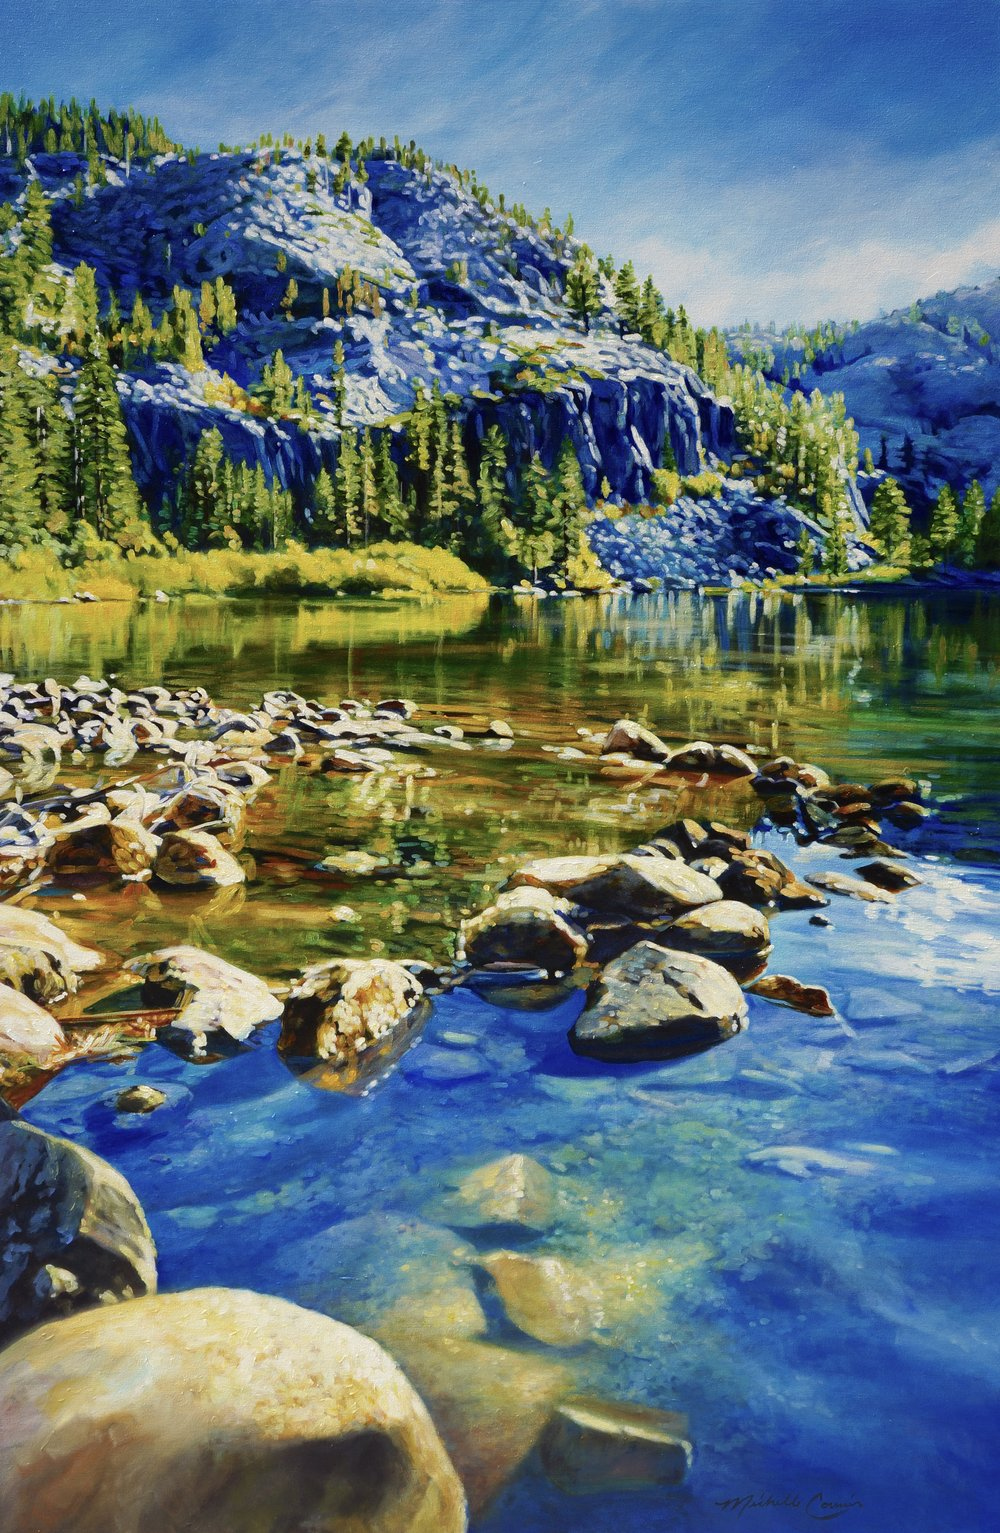 MOUNTAIN LAKE 48X72 IN $13,500  PRINTS AVAILABLE IN VARIES SIZES ON PAPER/CANVAS